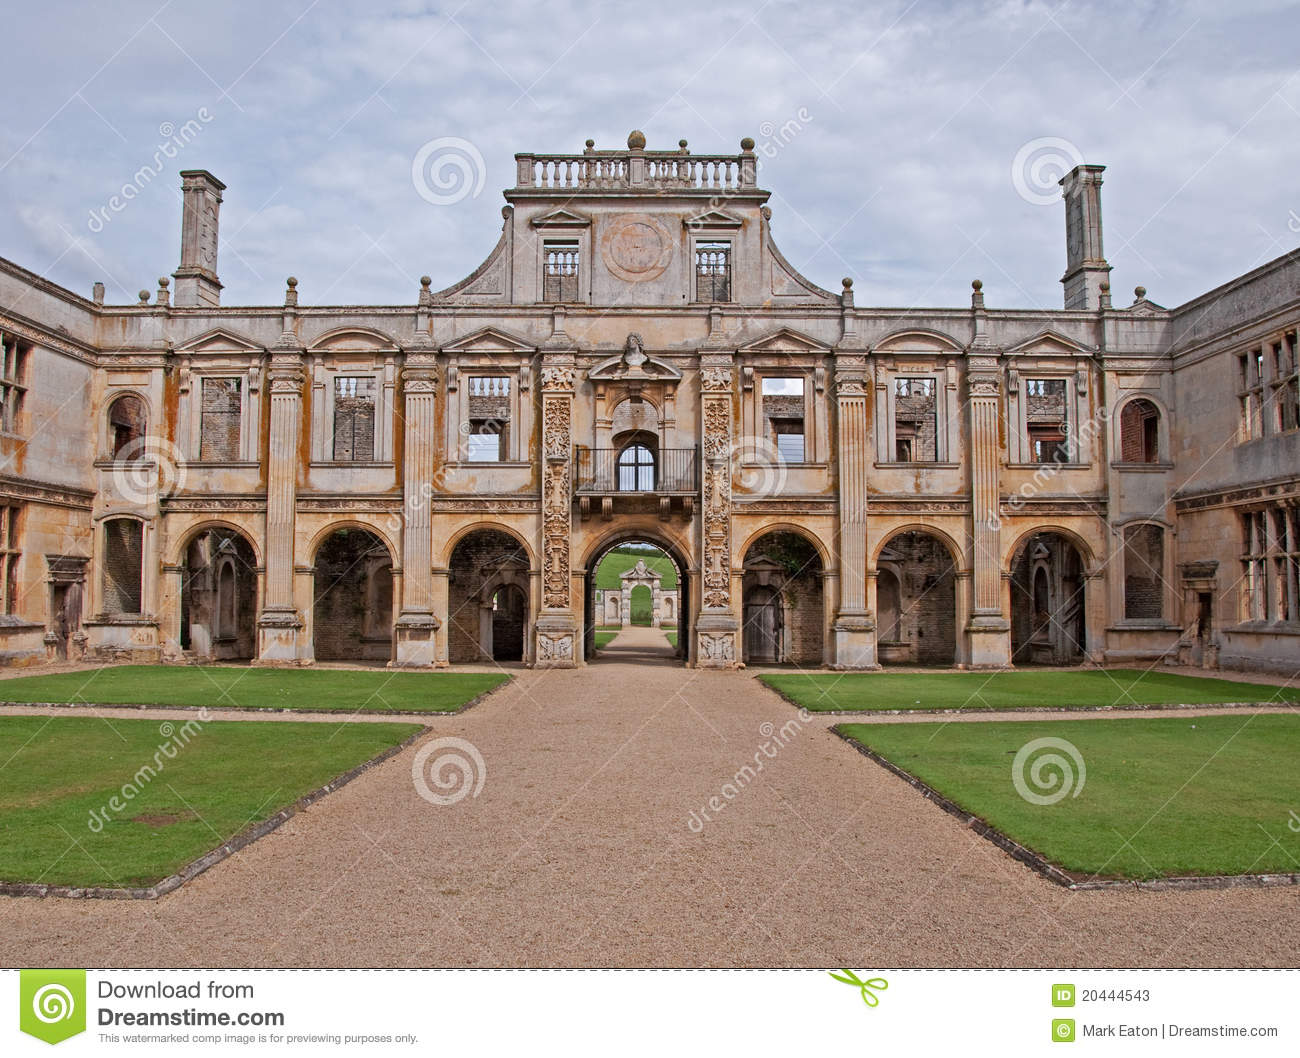 Elizabethan Manor House Stock Photos - Image: 20444543